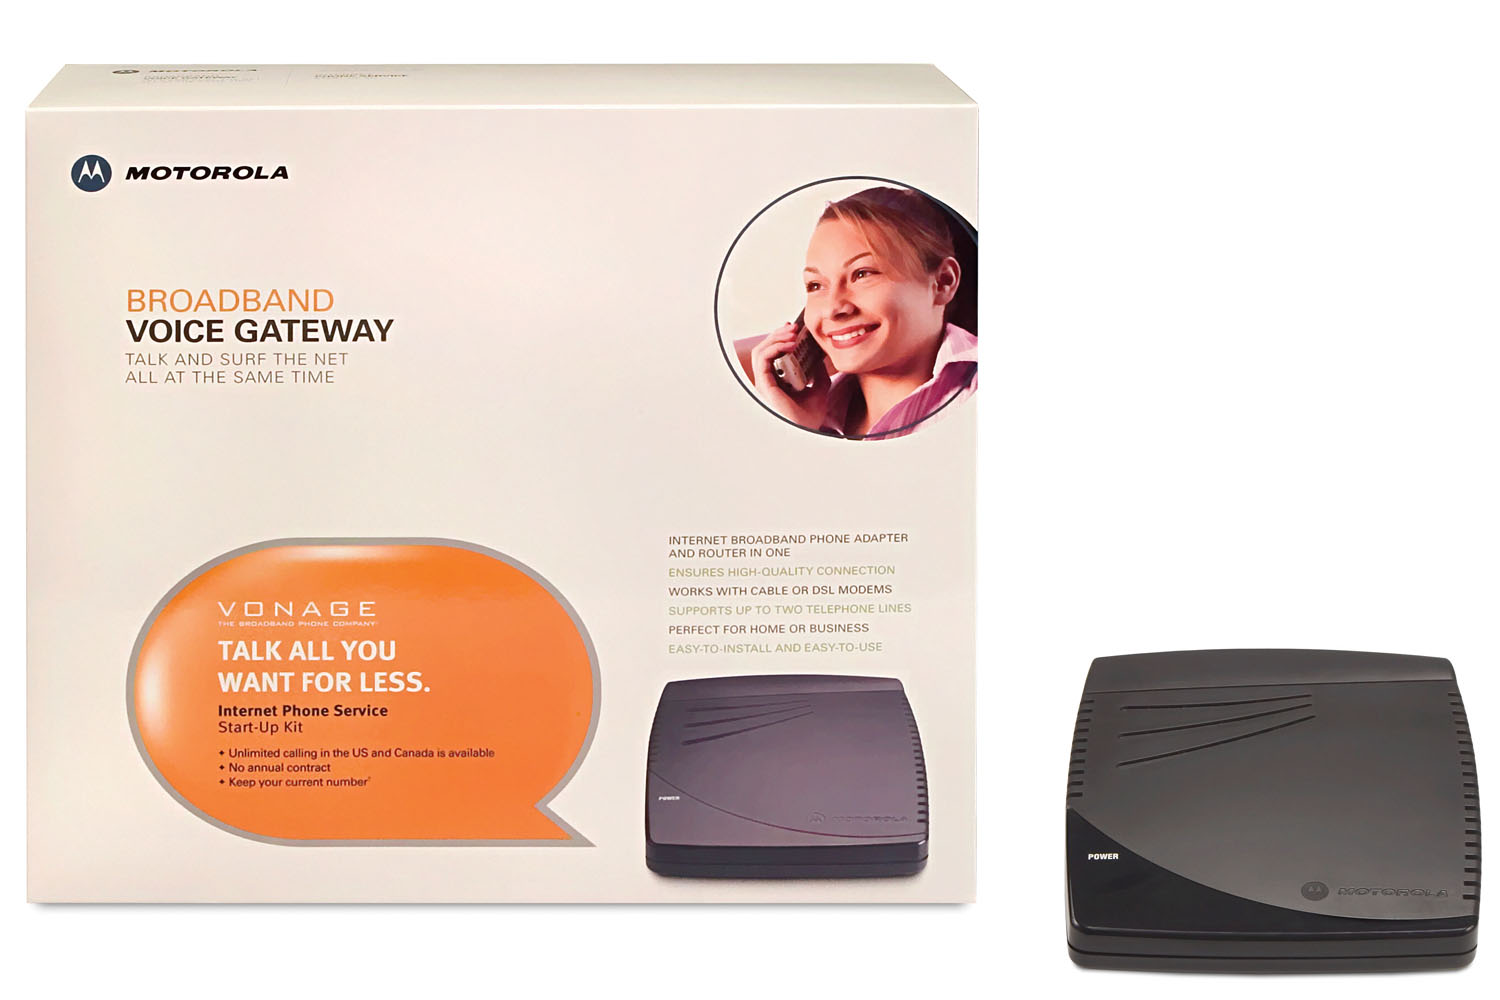 Motorola Broadband Voice Gateway (Vonage)